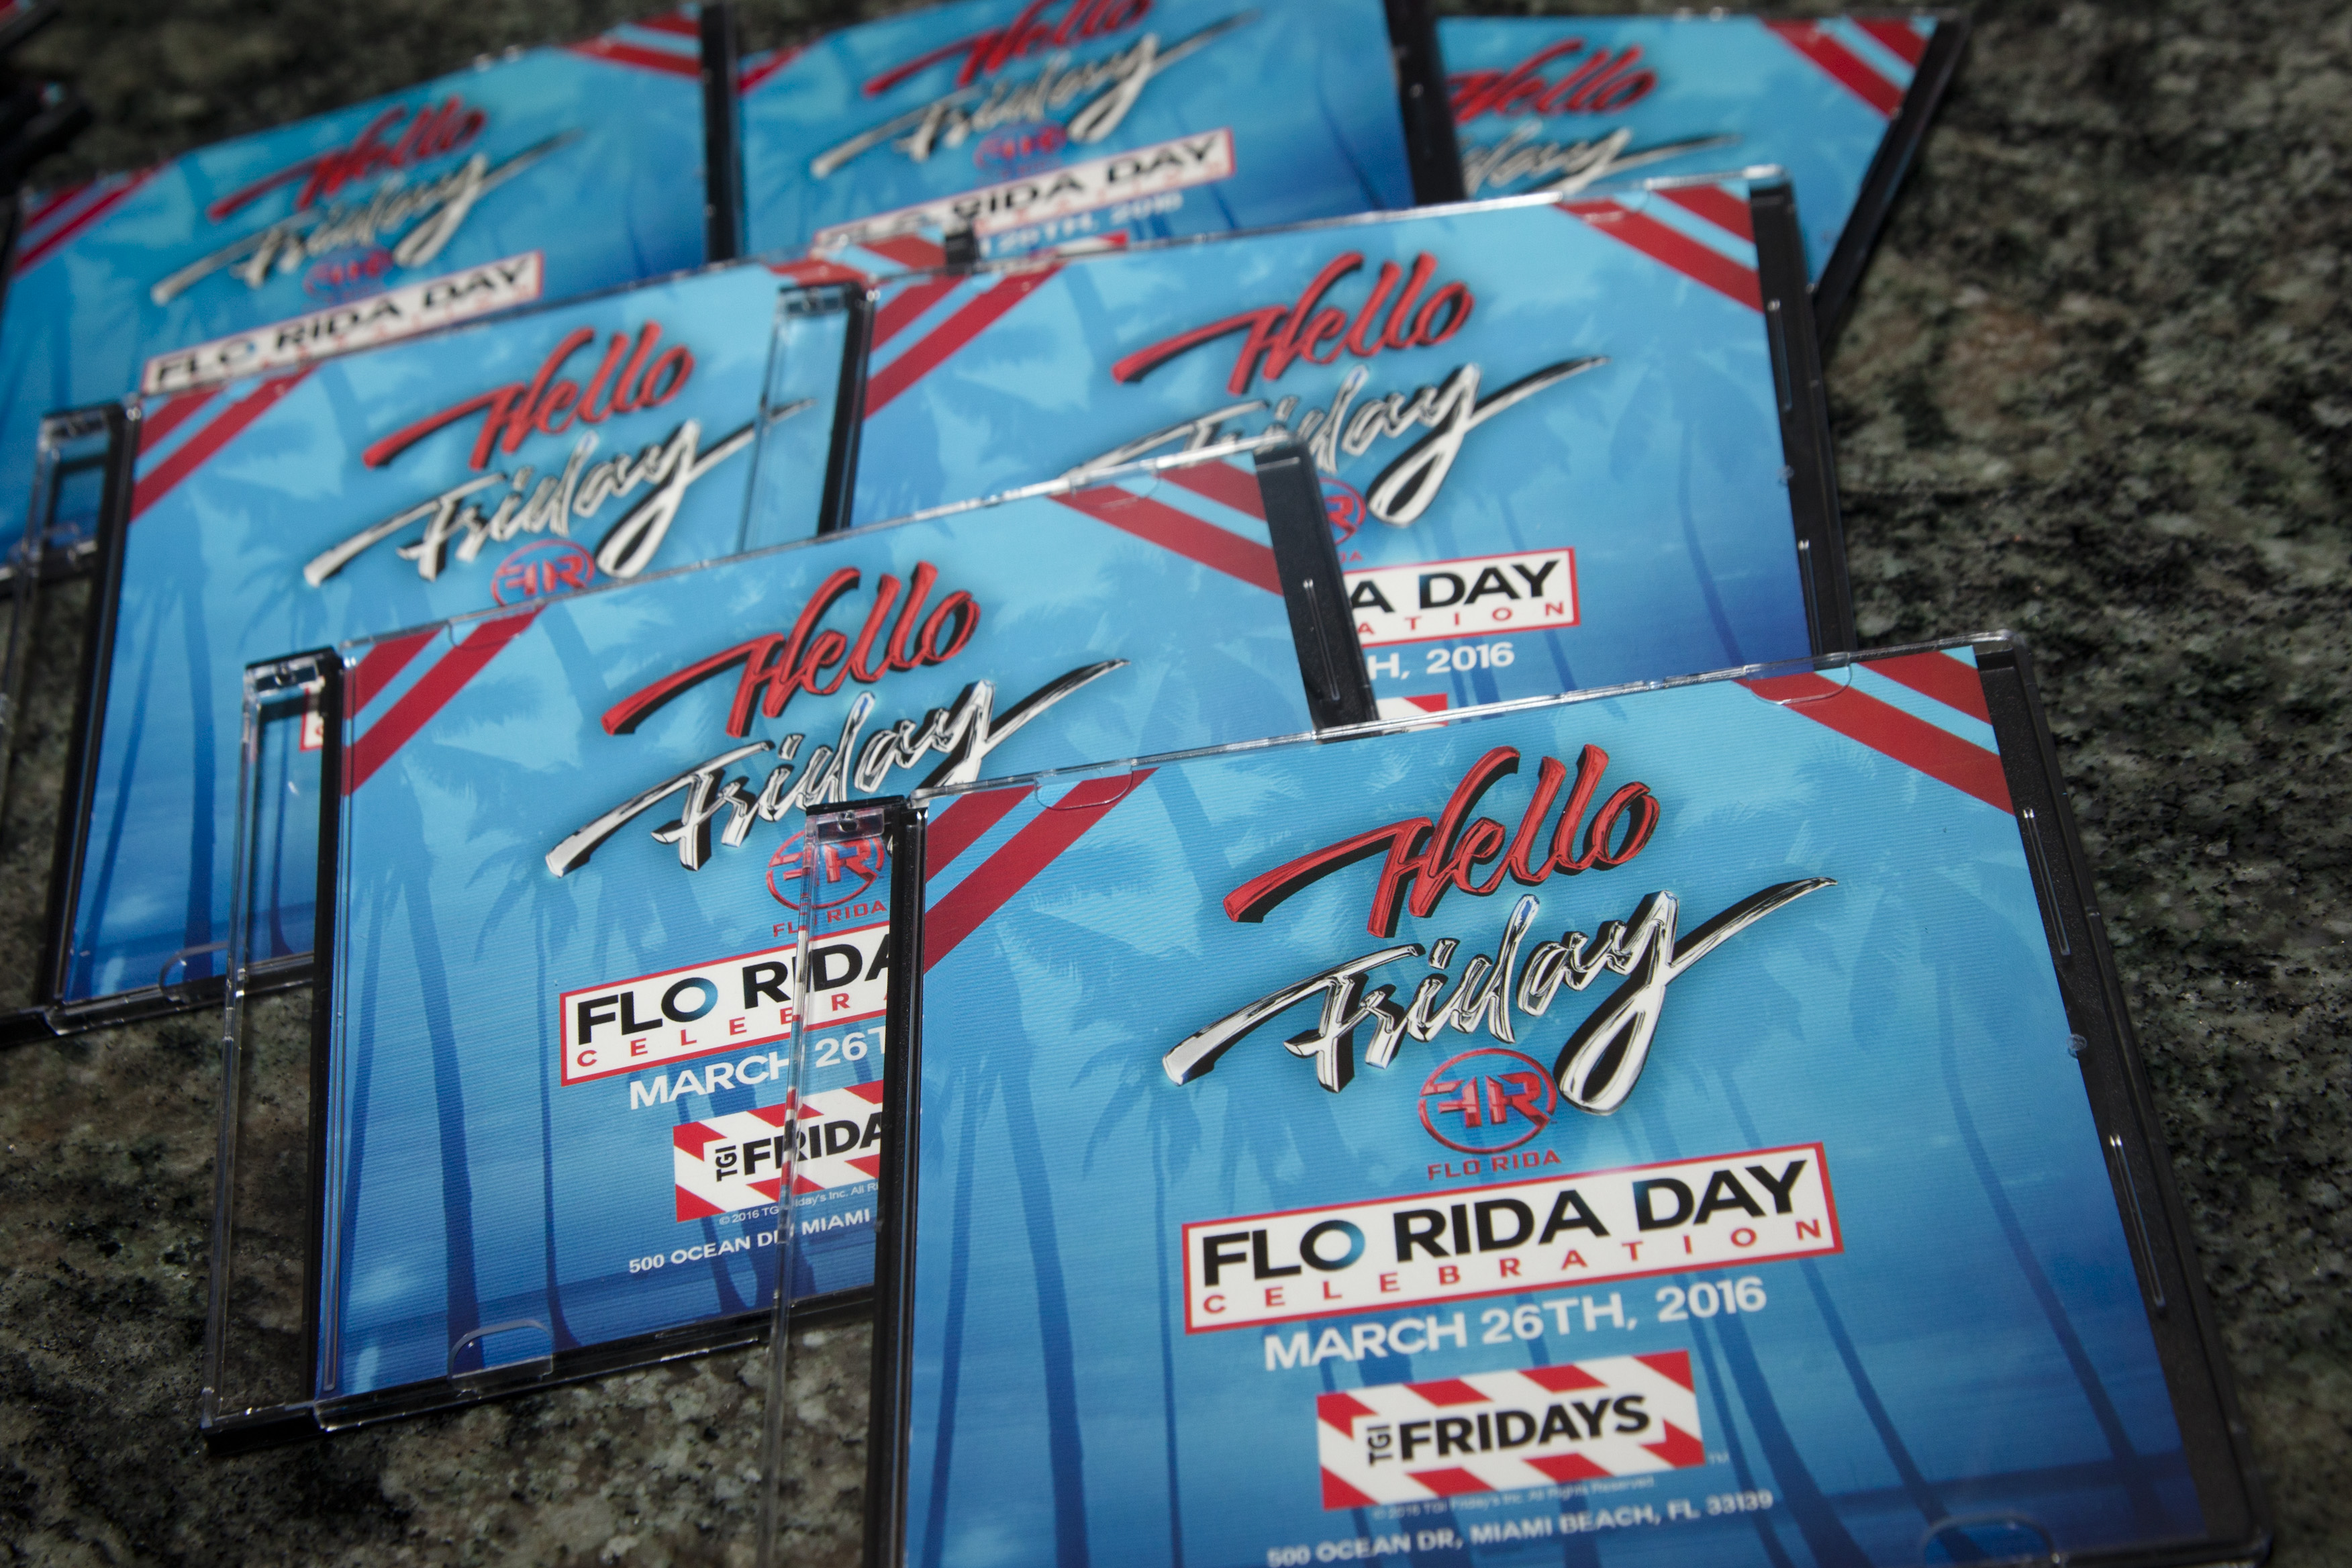 Gift CD's - Flo Rida Day in Miami Beach - TGI Fridays